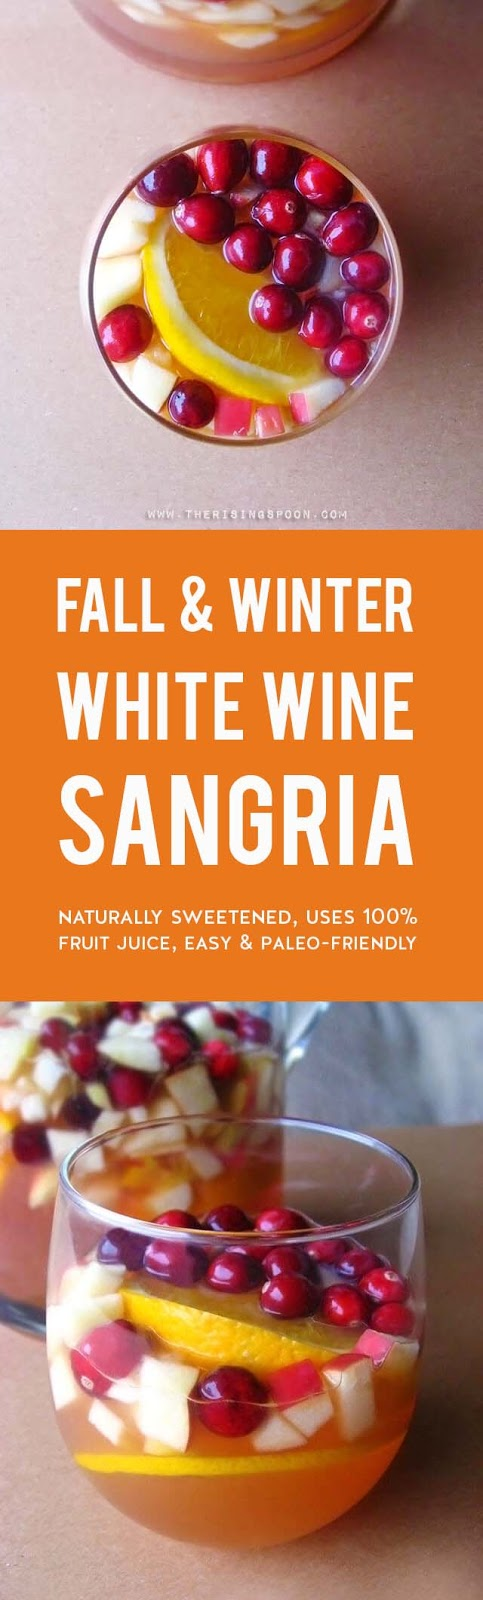 An easy white wine sangria recipe featuring gorgeous fall and winter ingredients like cranberries, apples, and oranges. This drink is refreshing, not too sweet, and even slightly healthy with the addition of 100% unsweetened cranberry juice. It's elegant enough to serve at a holiday gathering, yet simple enough for a low-key weeknight dinner. (gluten-free & paleo)